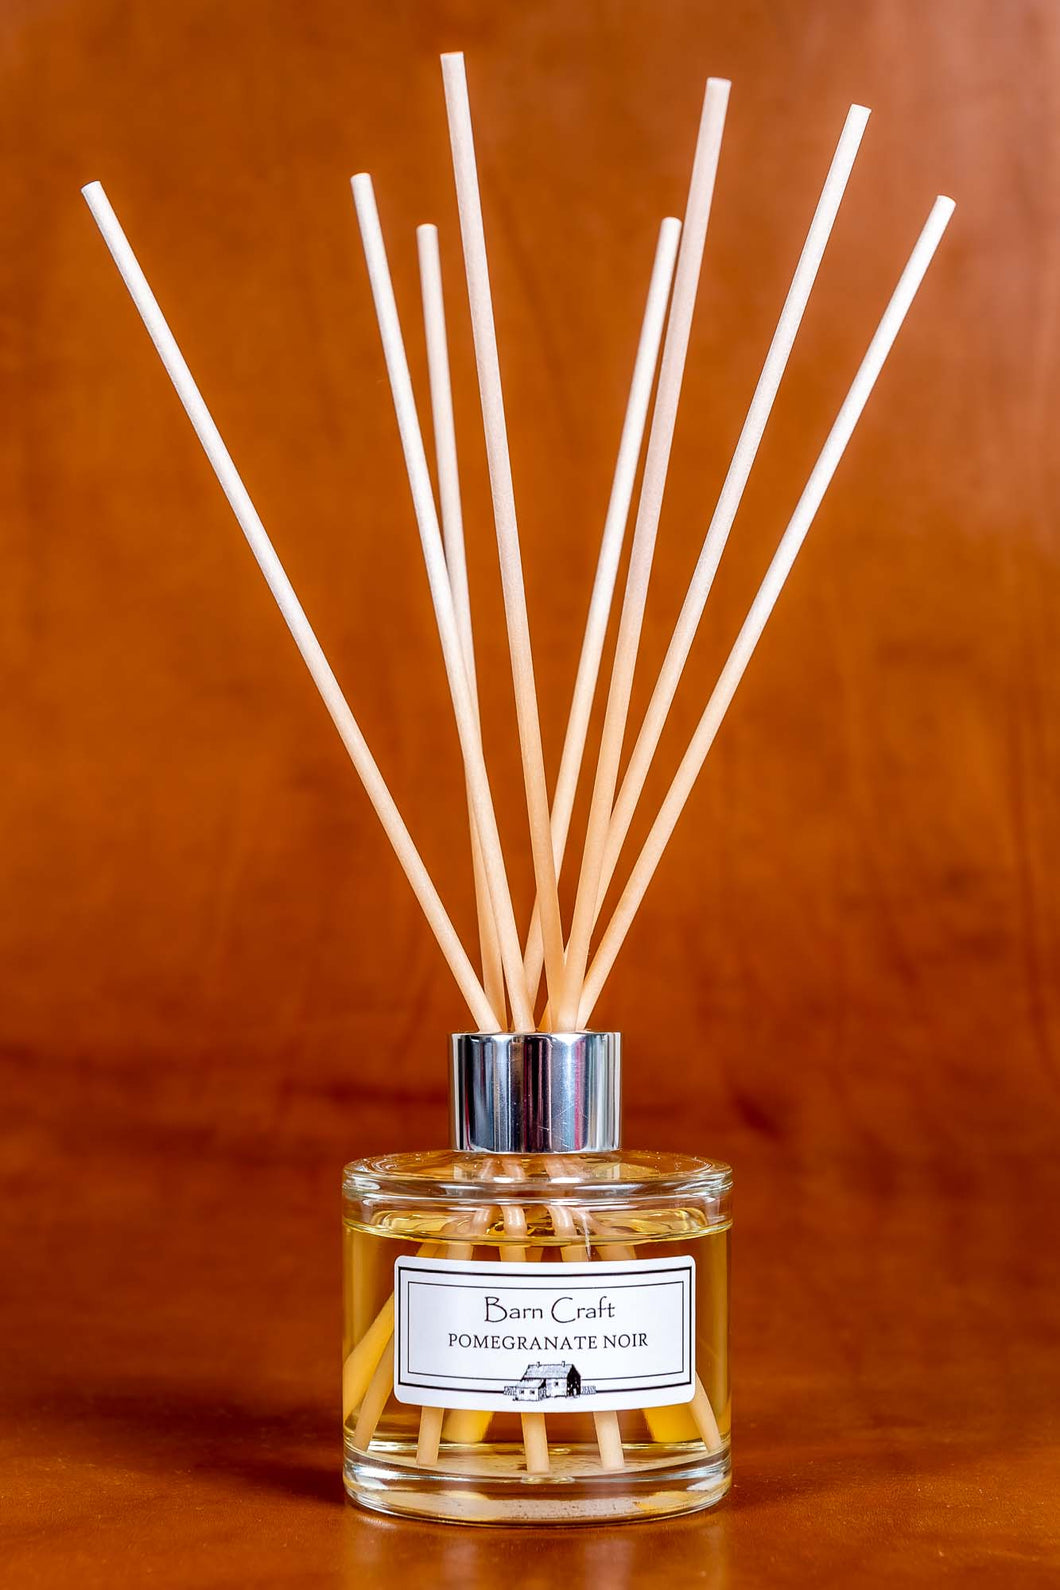 Pomegranate Noir reed diffuser